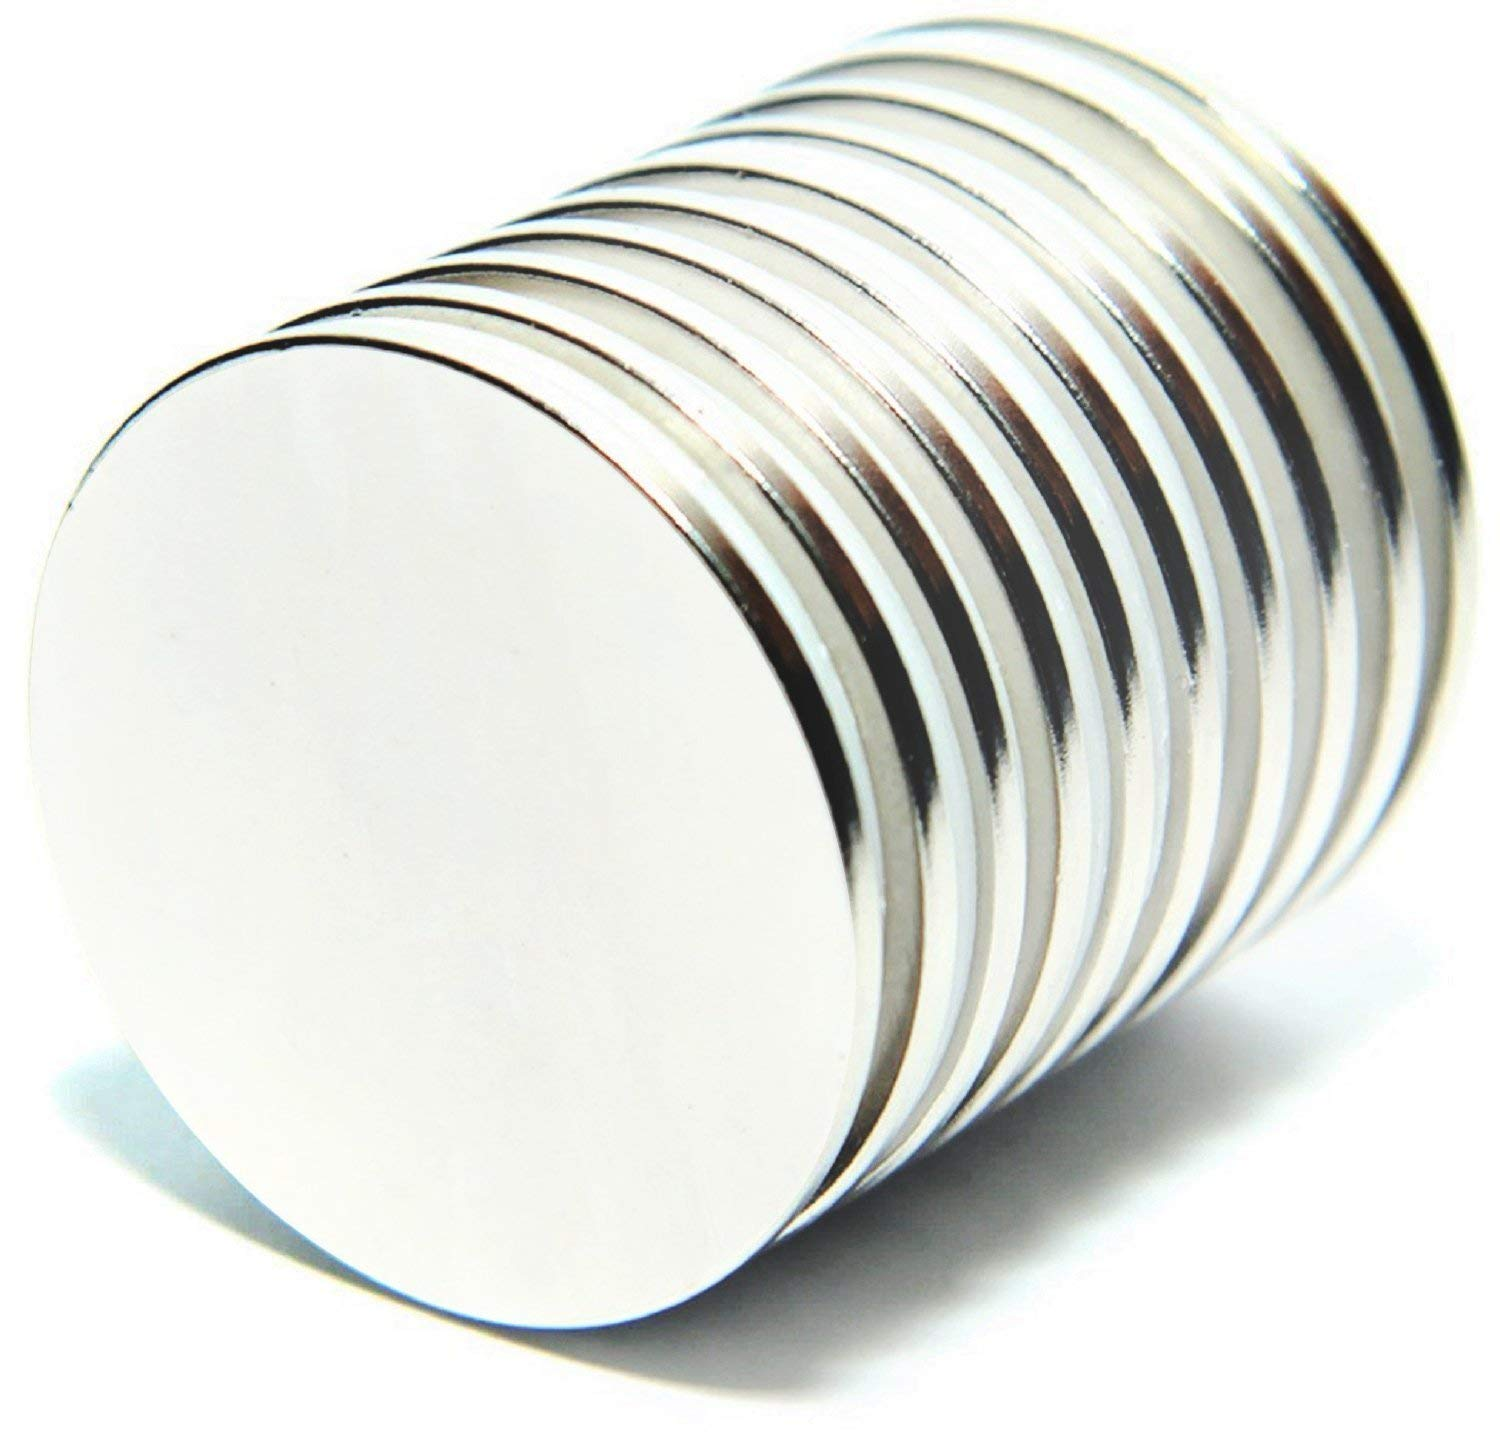 Neodymium Magnets Therapy and Crafts Bulk Pack of 10 Cool for Fridge Thin Round Flat Disc The Strongest /& Most Powerful Rare Earth Magnet